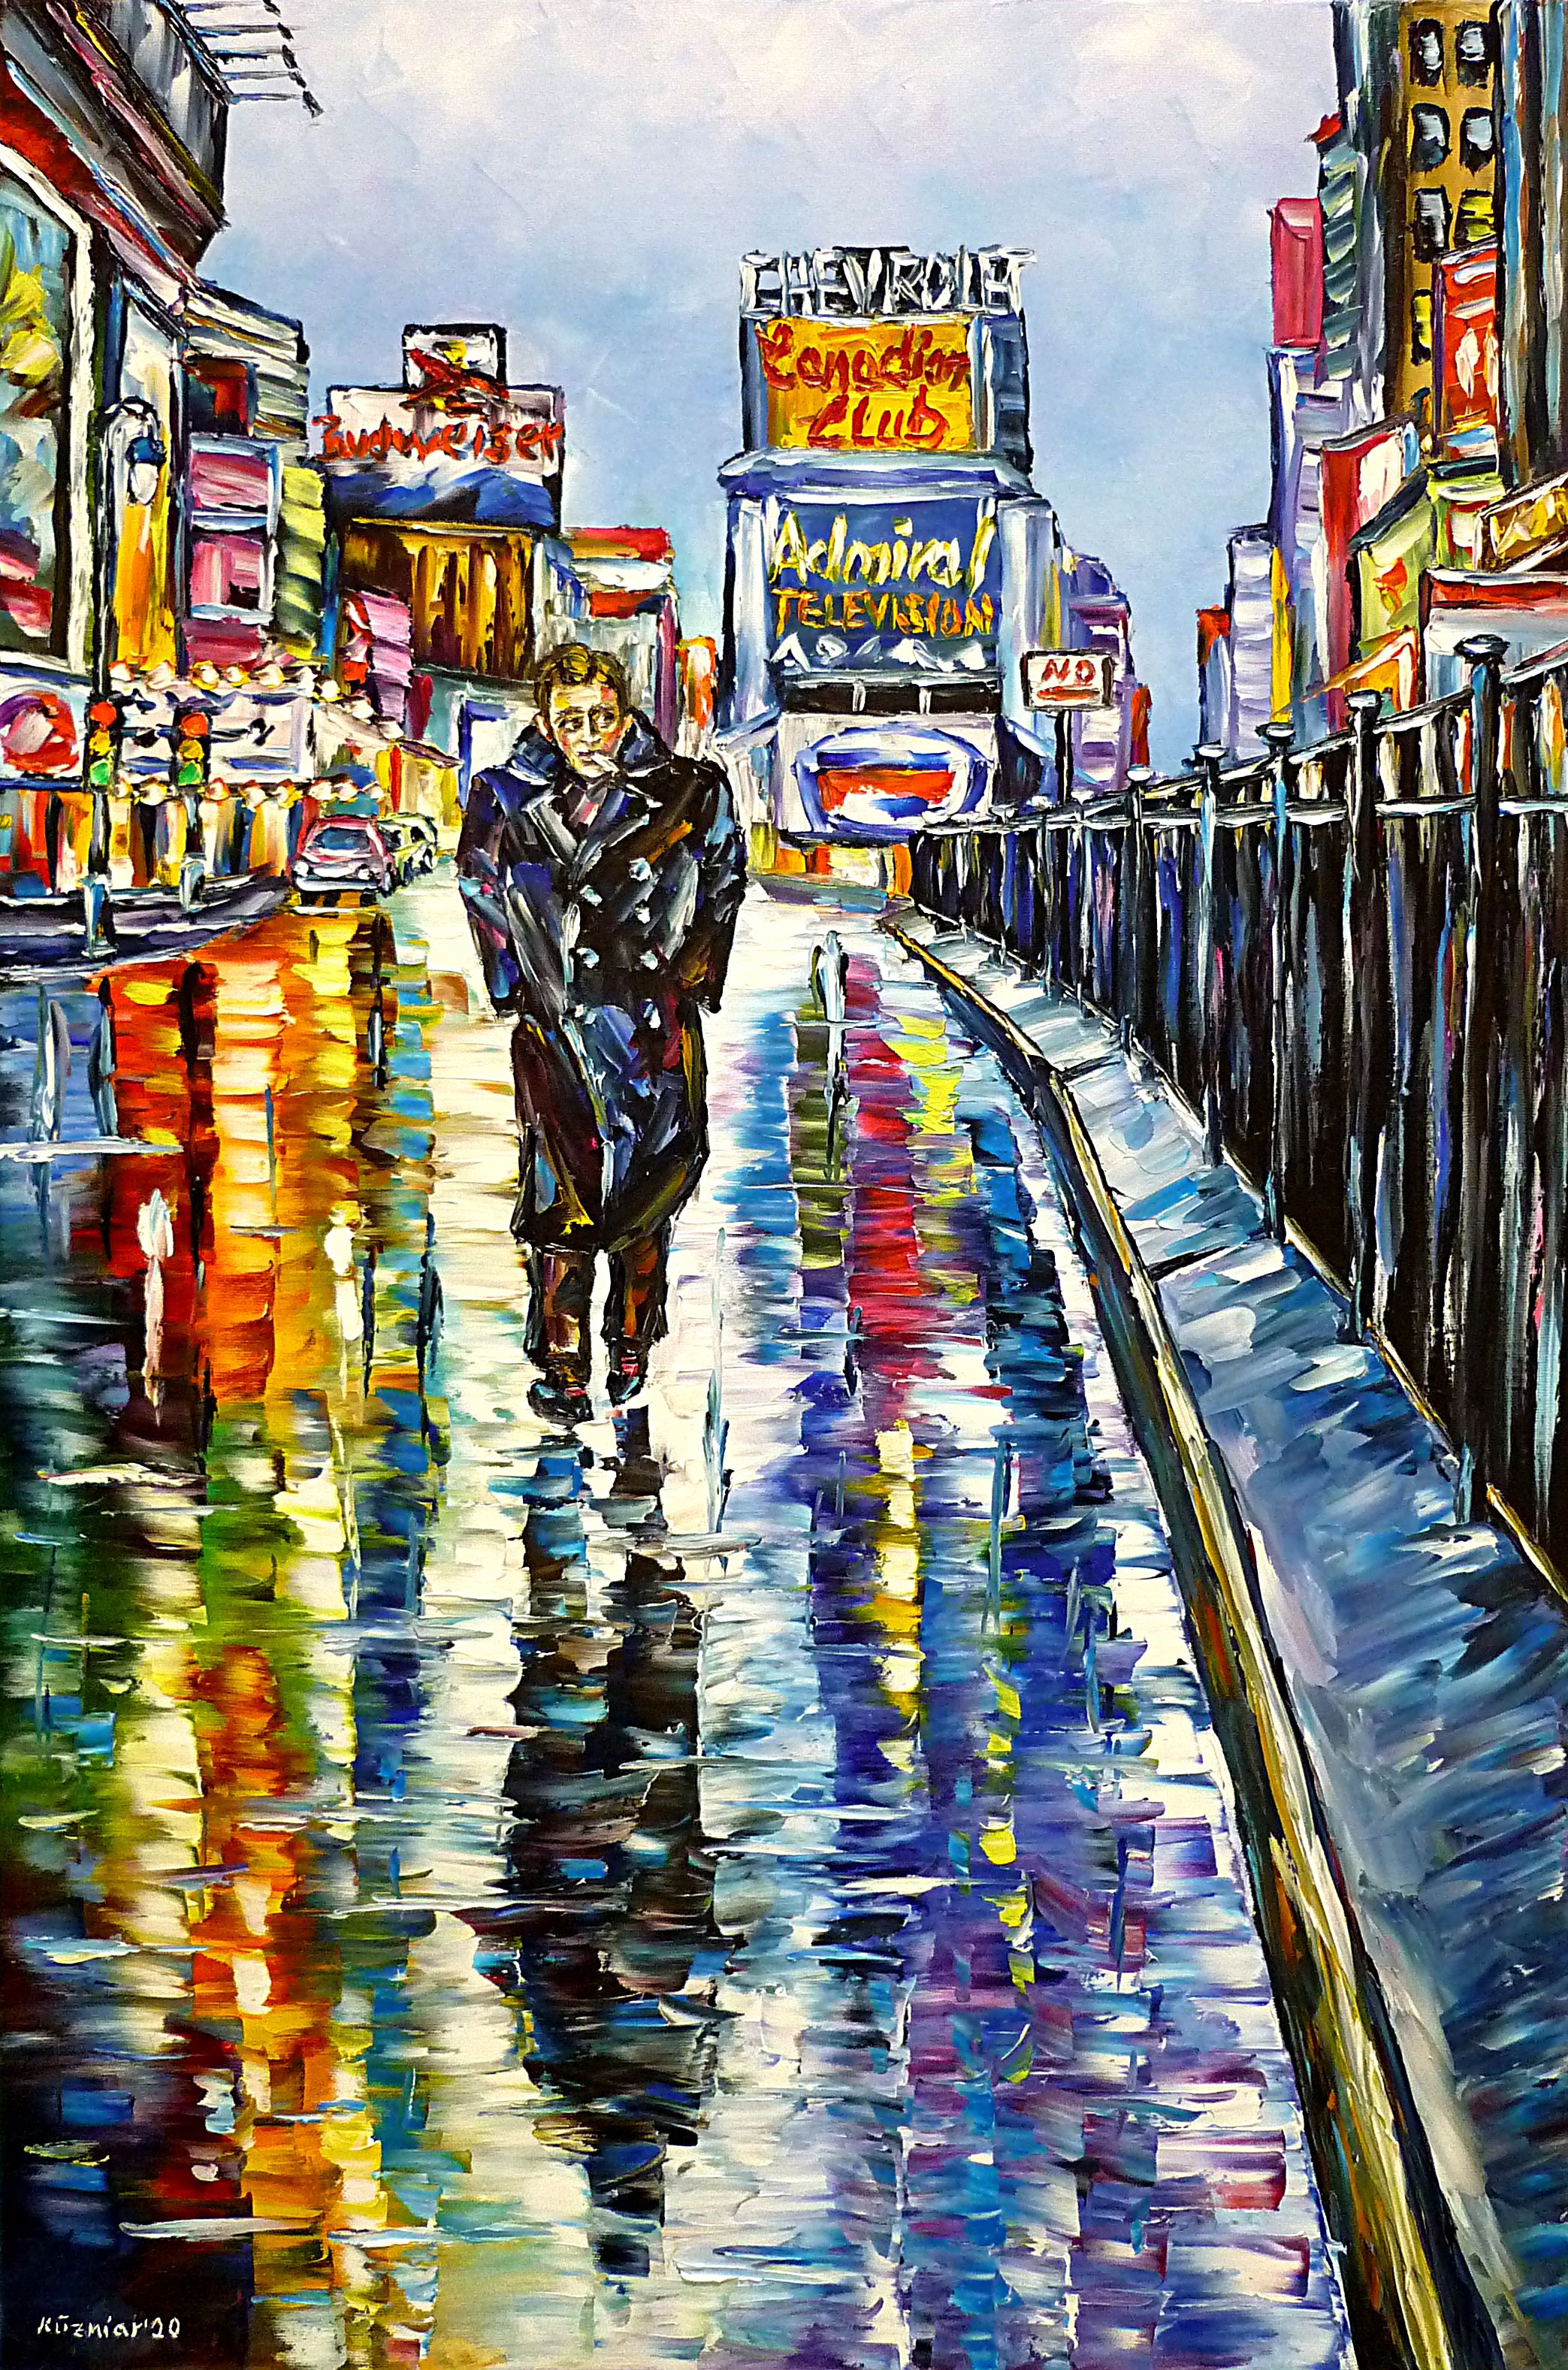 jamesdeanpainting,jamesdeanpicture,jamesdeanportrait,jamesdeanattimessquare,jamesdeaninnewyork,timessquare1955,newyork1955,boulevardofbrokendreams,jamesdeanintherain,newyorkintherain,timessquareintherain,cloudysky,rainyday,rainysky,jamesdeanwithcigarette,manwithcigarette,smoker,smoking,maninacoat,jamesdeaninacoat,waterreflections,lonelyman,cityintherain,newyorkpainting,newyorkpicture,newyorklovers,newyorklove,ilovejamesdean,ilovenewyork,colorfulnewyork,beautifulnewyork,oldnewyork,chevrolet,canadianclub,budweiser,newyorkadvertising,glowingbillboards,walkingintherain,citywalk,colorfulhouses,cityscape,newyorkabstract,bluepainting,paletteknifeoilpainting,modernart,impressionism,artdeco,abstractpainting,livelypainting,colorfulpainting,livelycolours,brightcolors,lightreflections,impastopainting,livingroomart,livingroompicture,livingroompainting